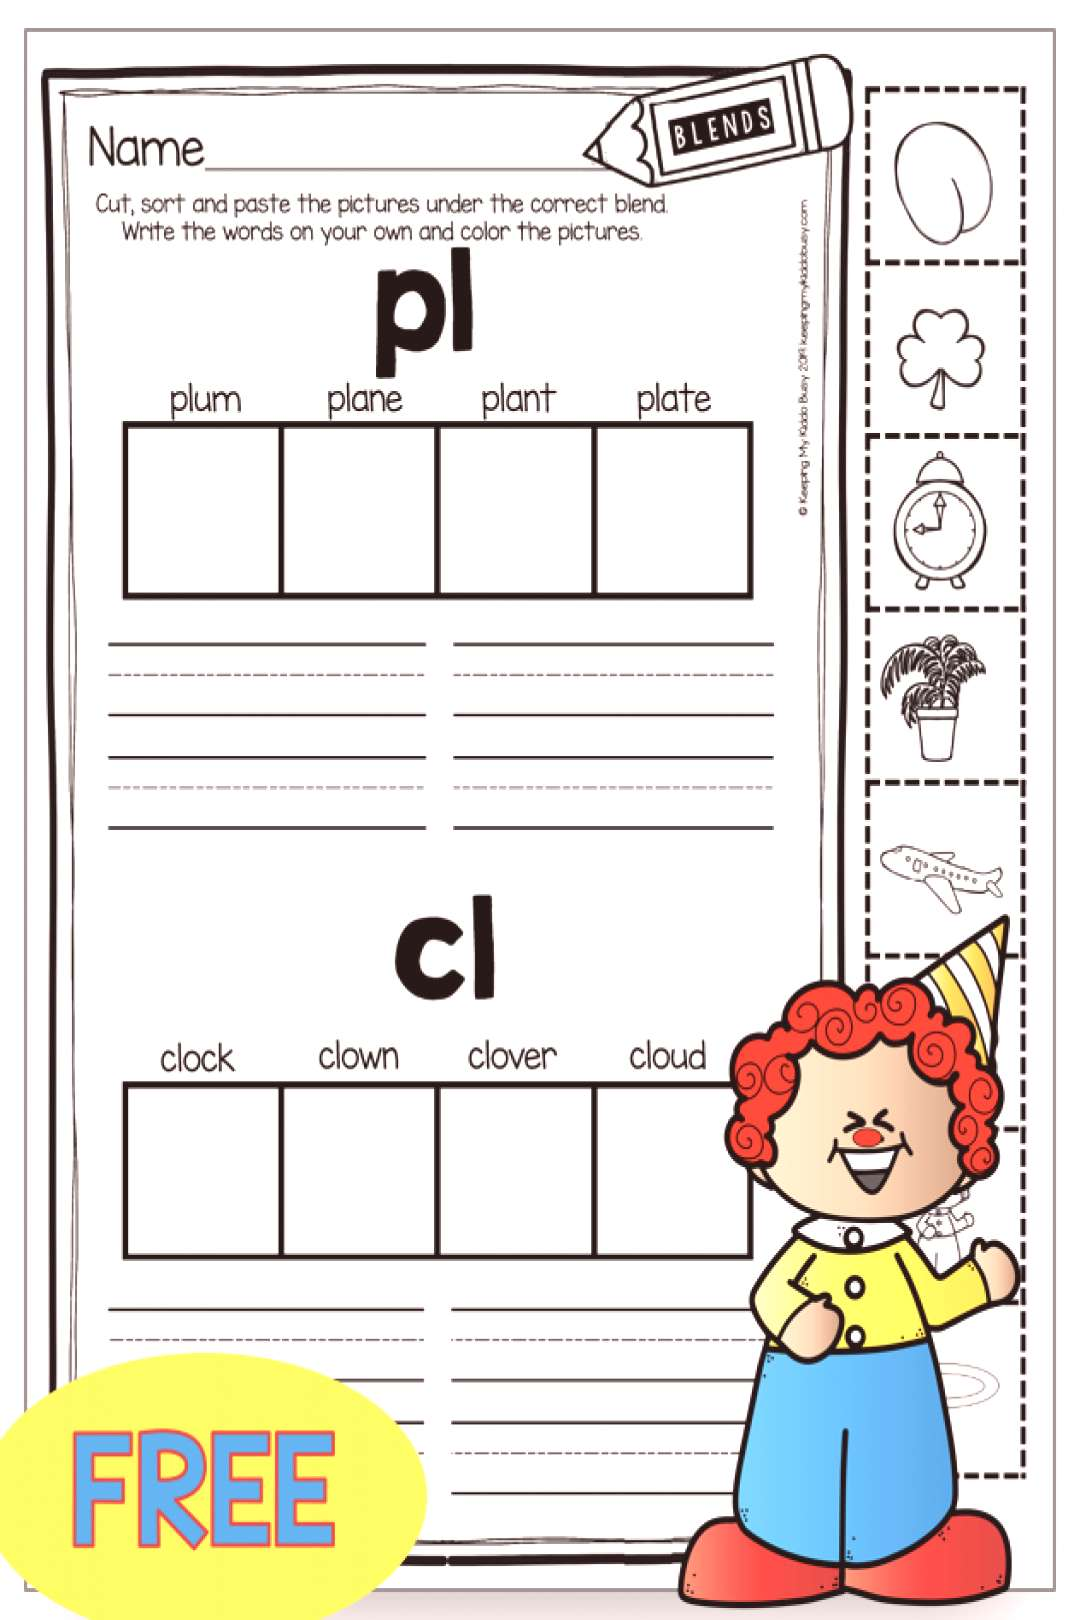 FREE Consonant Blends worksheet - phonics printables and activities for kindergarten and firs... FR